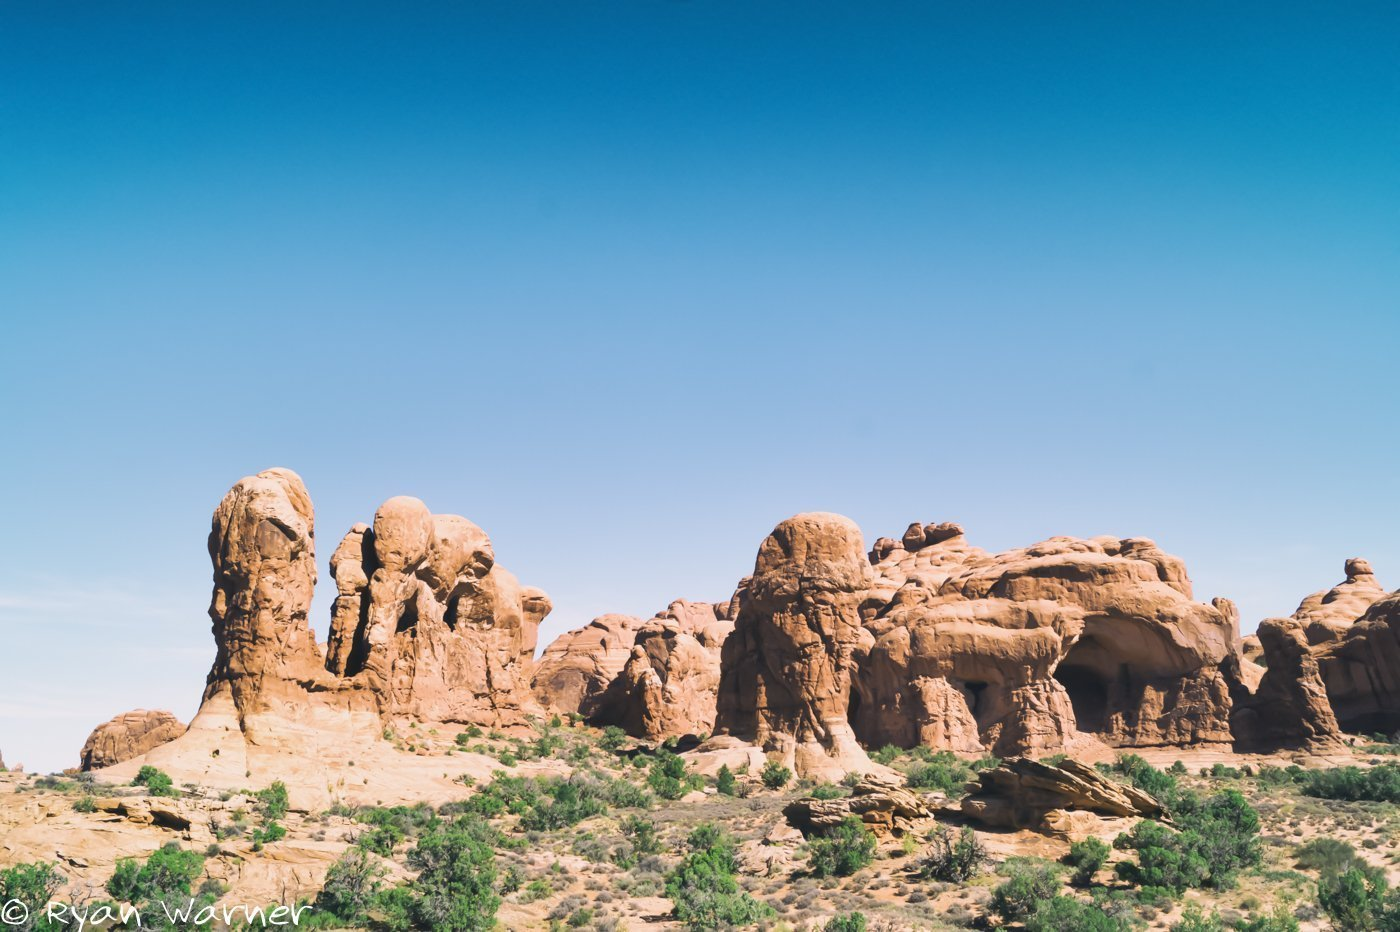 Ryan Warner - Photography - Arches National Park